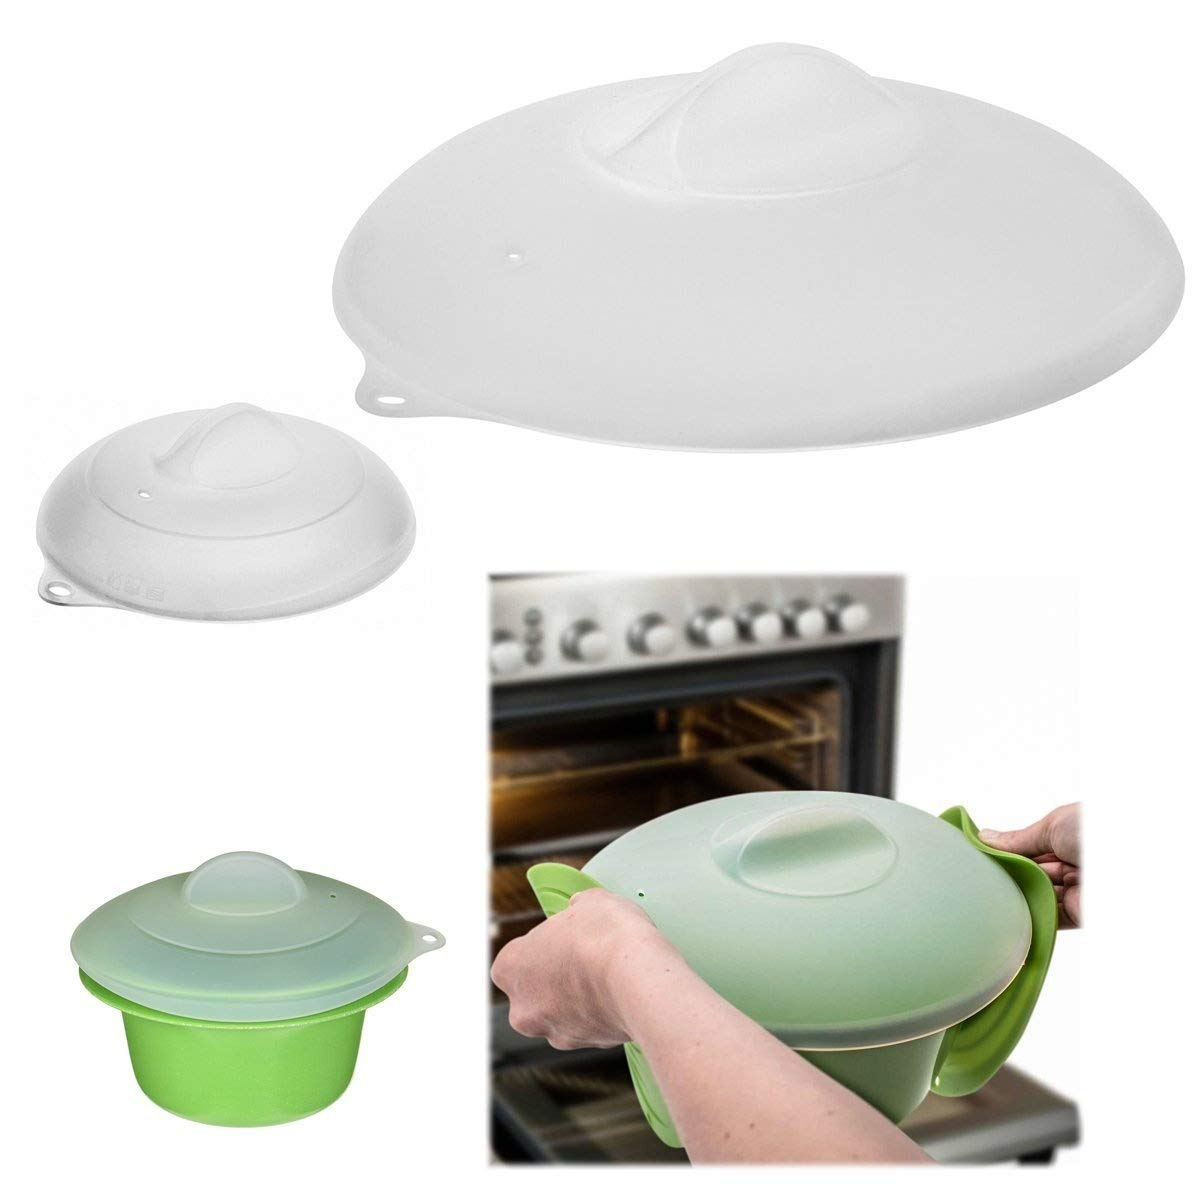 Zak Set of 2 Silicone Lids Dome Microwave Cover for Food Splatter Guard Large Small Plates Zak!